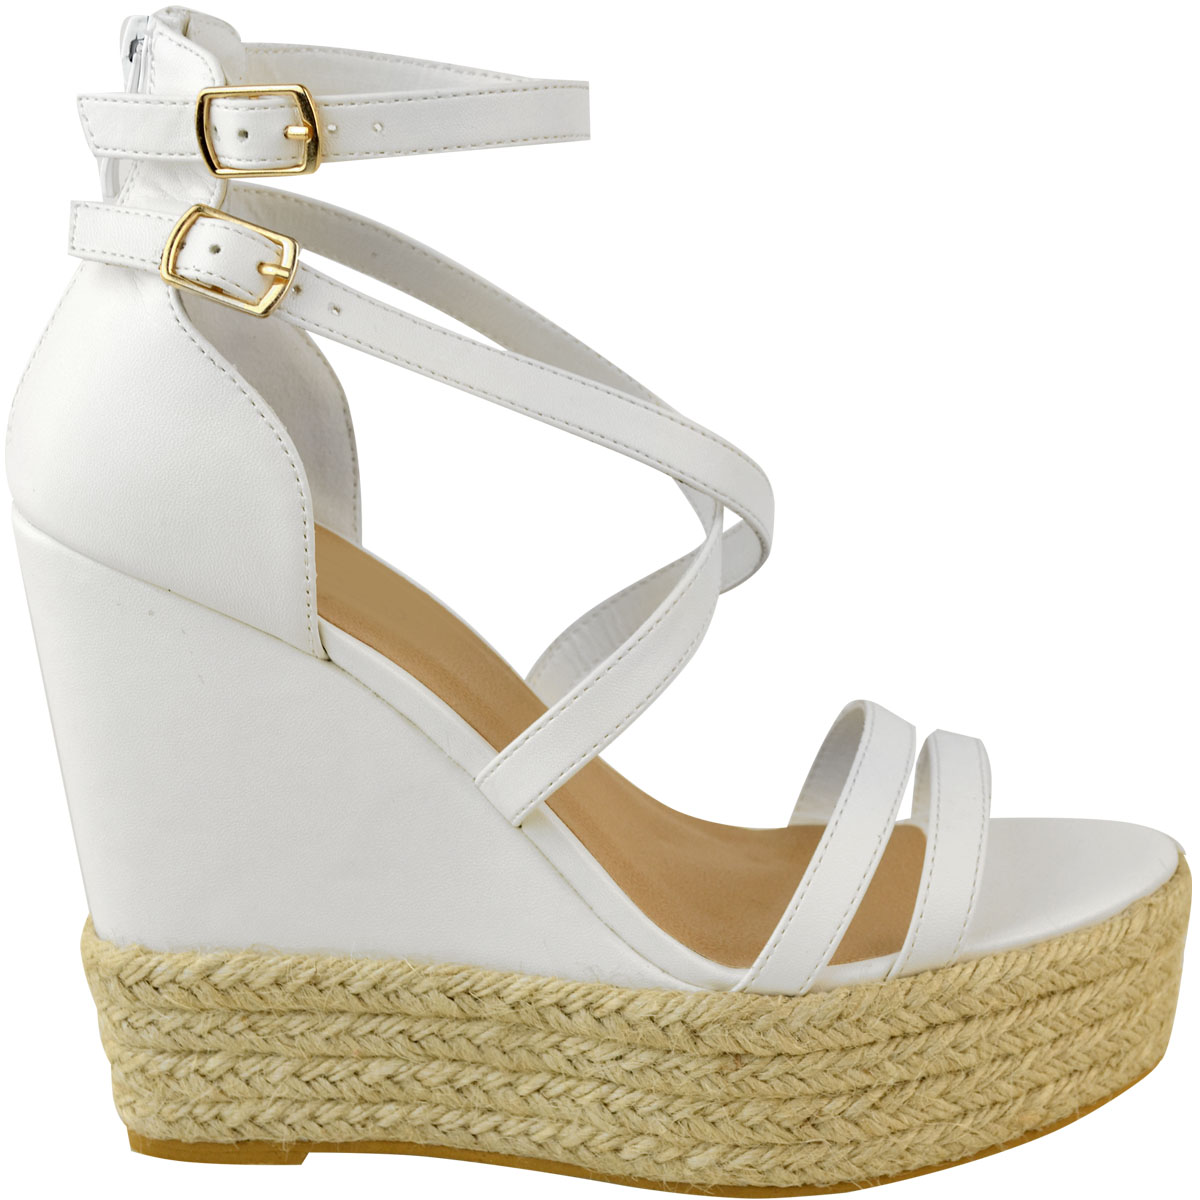 New-Womens-Ladies-Wedge-Espadrille-Sandals-Strappy-Rose-Gold-Summer-Shoes-Size thumbnail 14